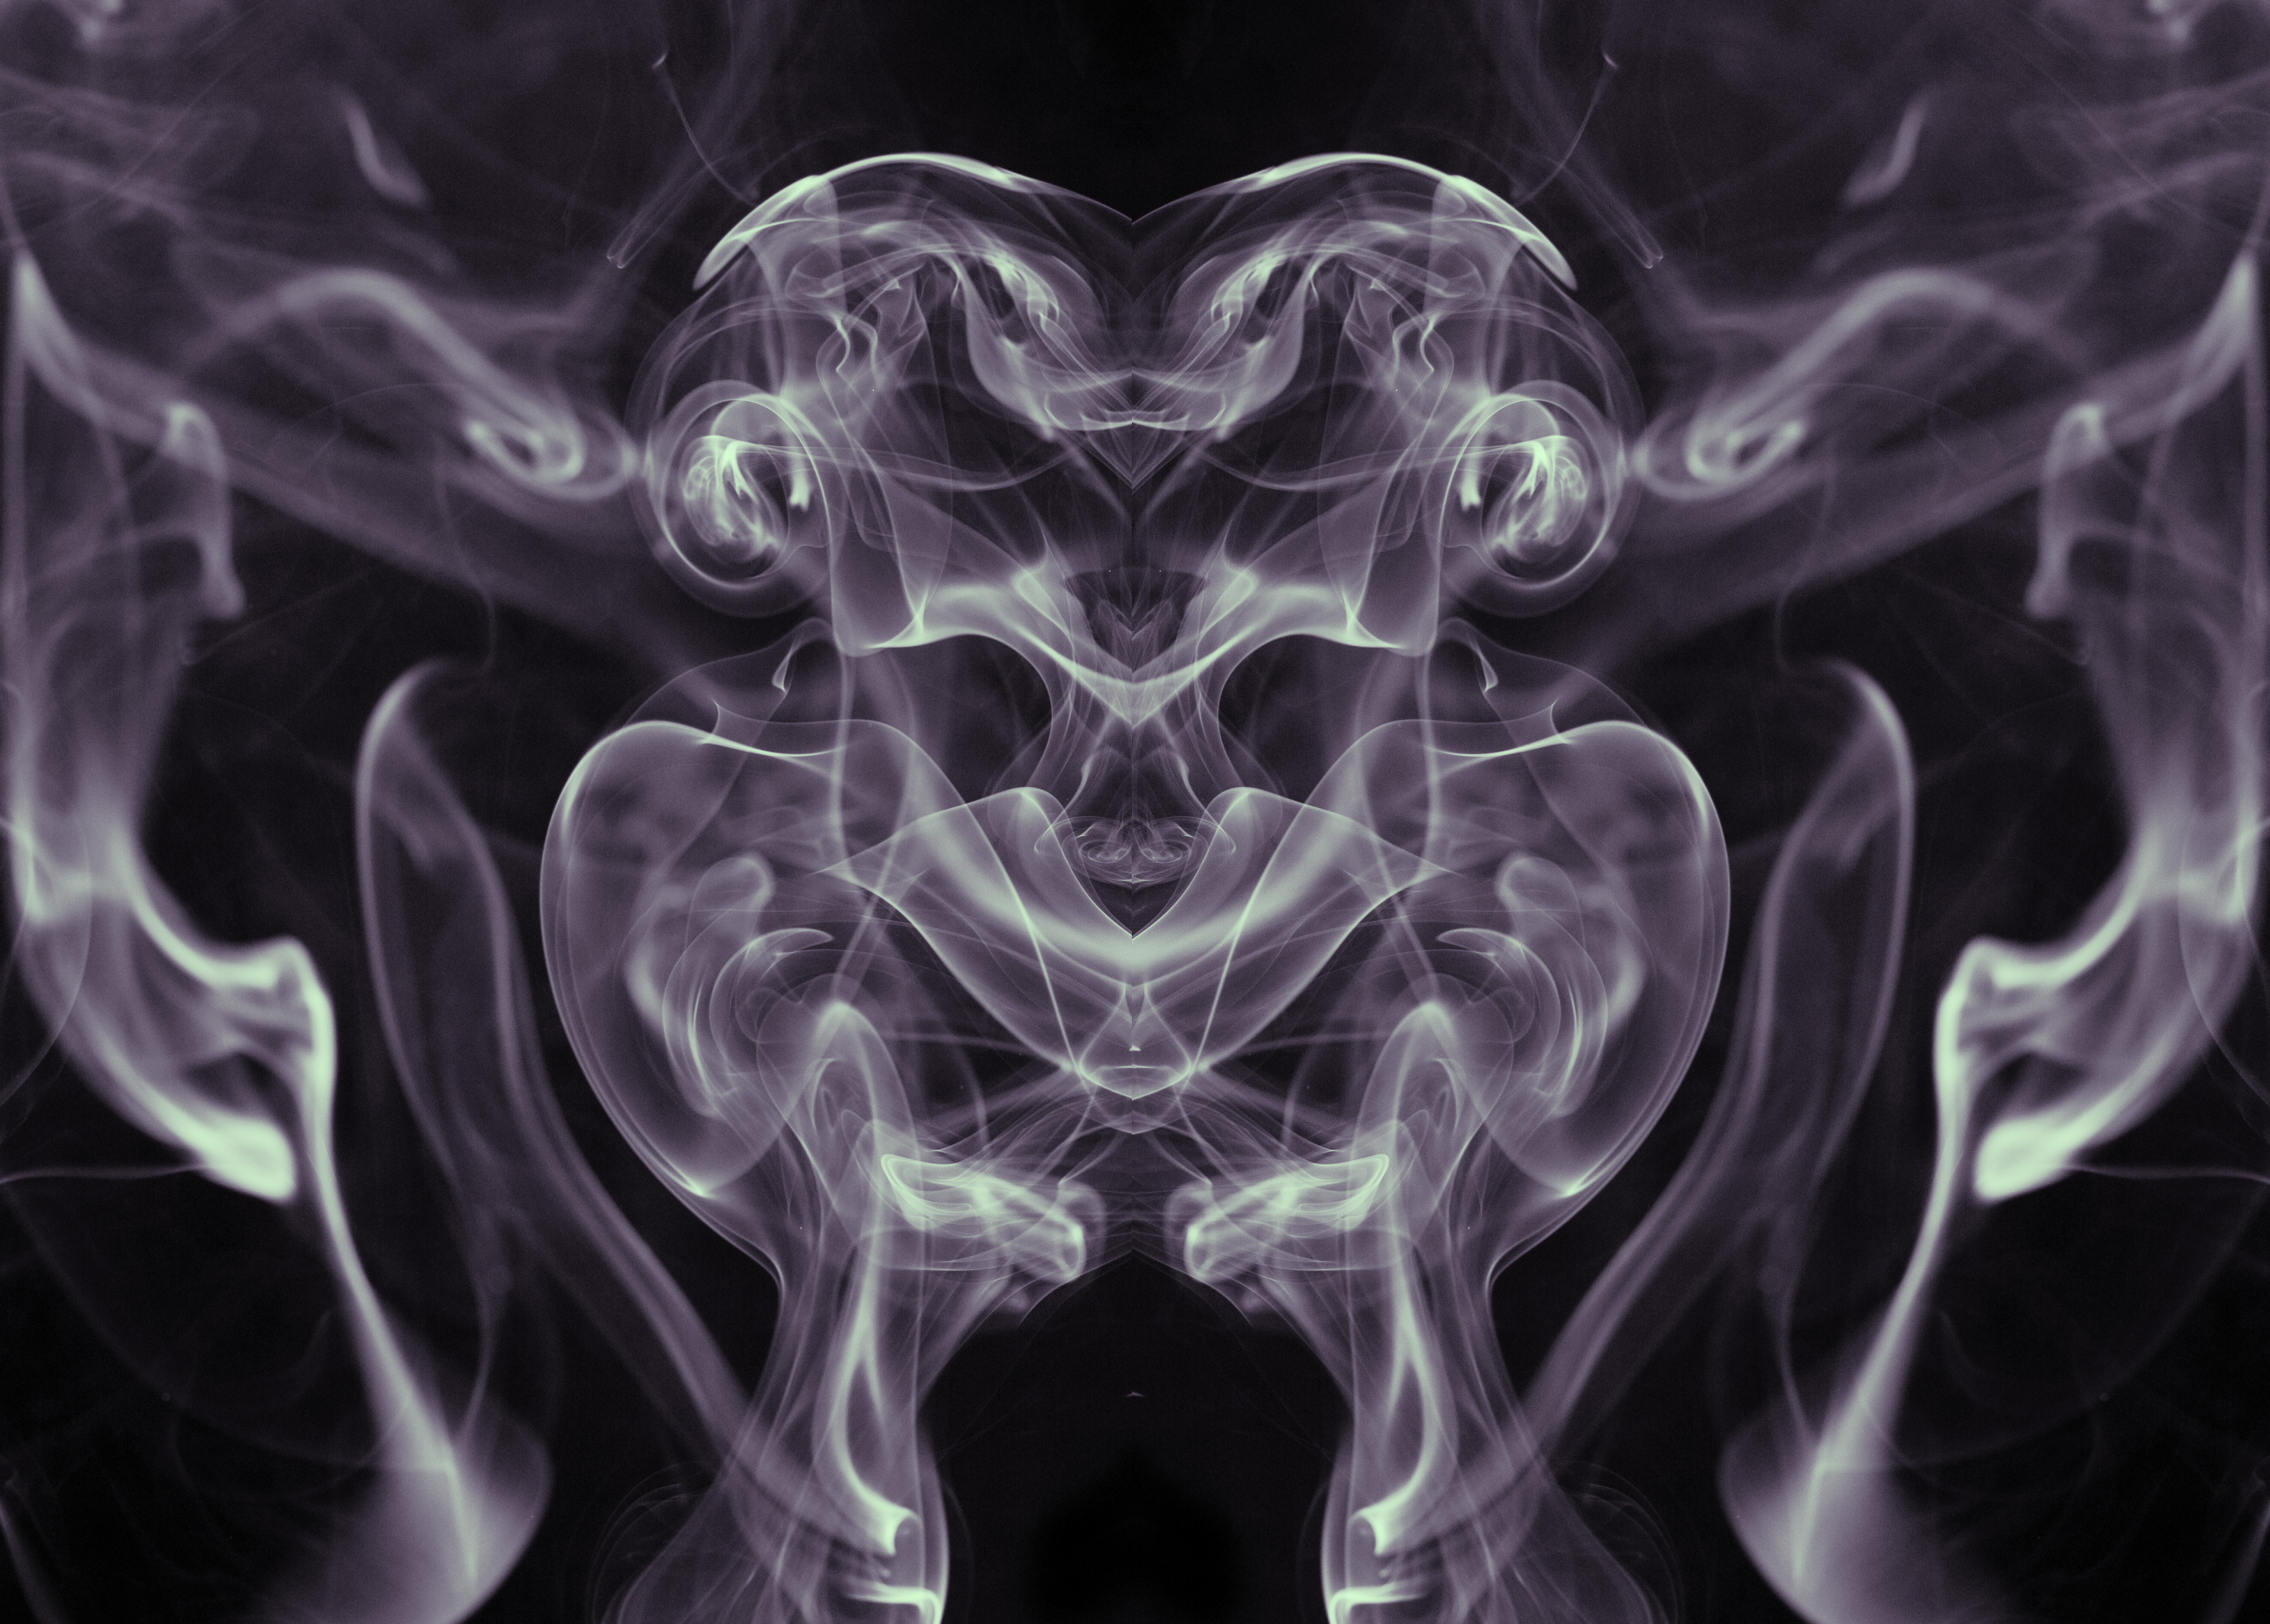 102543 download wallpaper Abstract, Winding, Sinuous, Wavy, Smoke screensavers and pictures for free